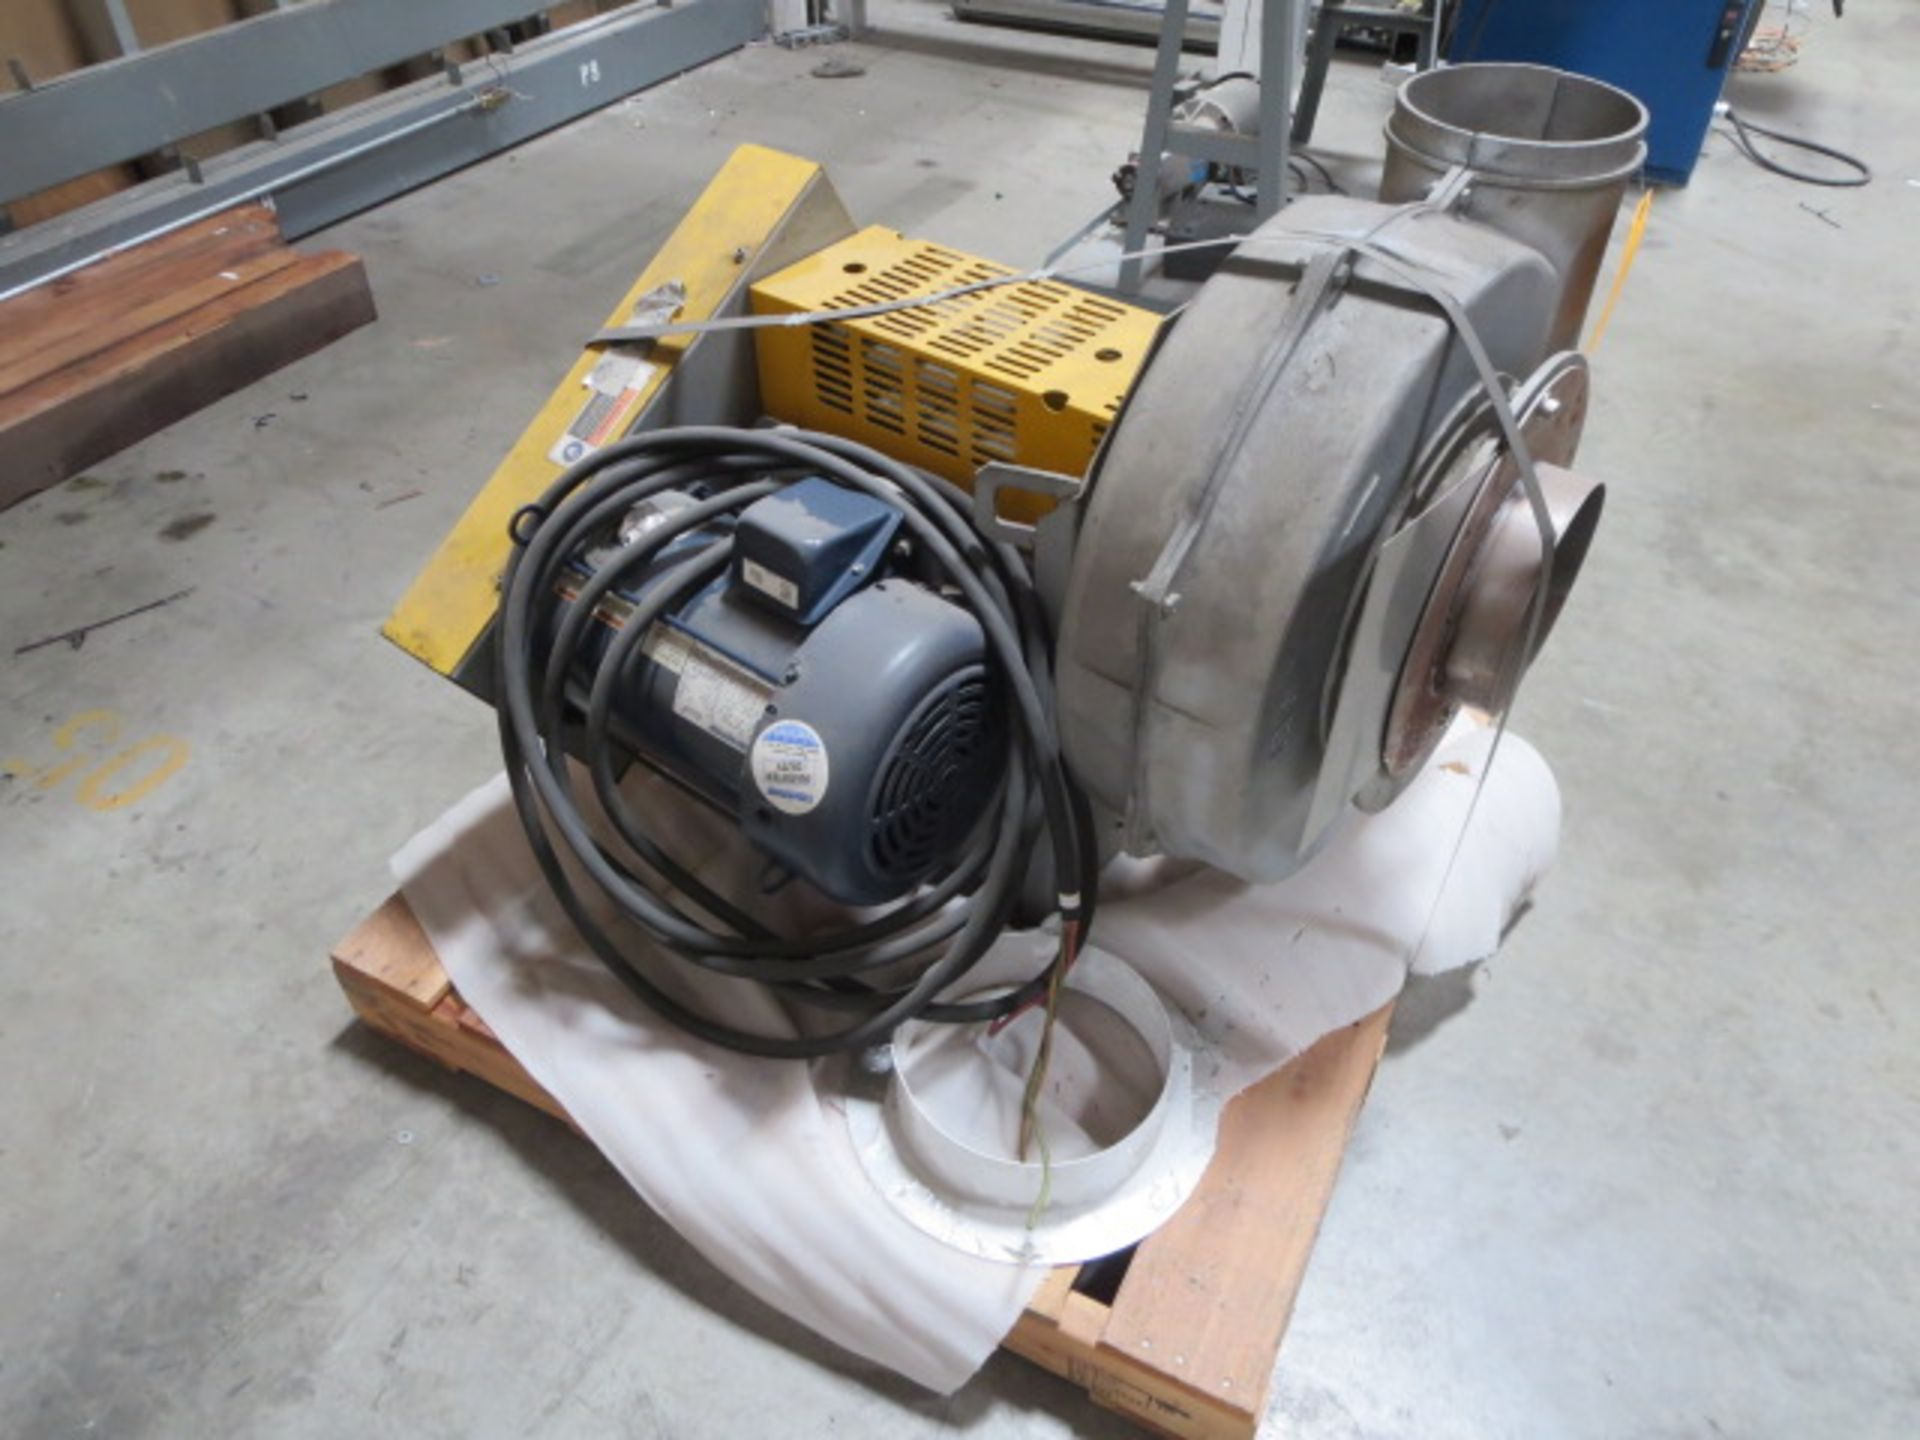 Lot 337 - Motor and Blower